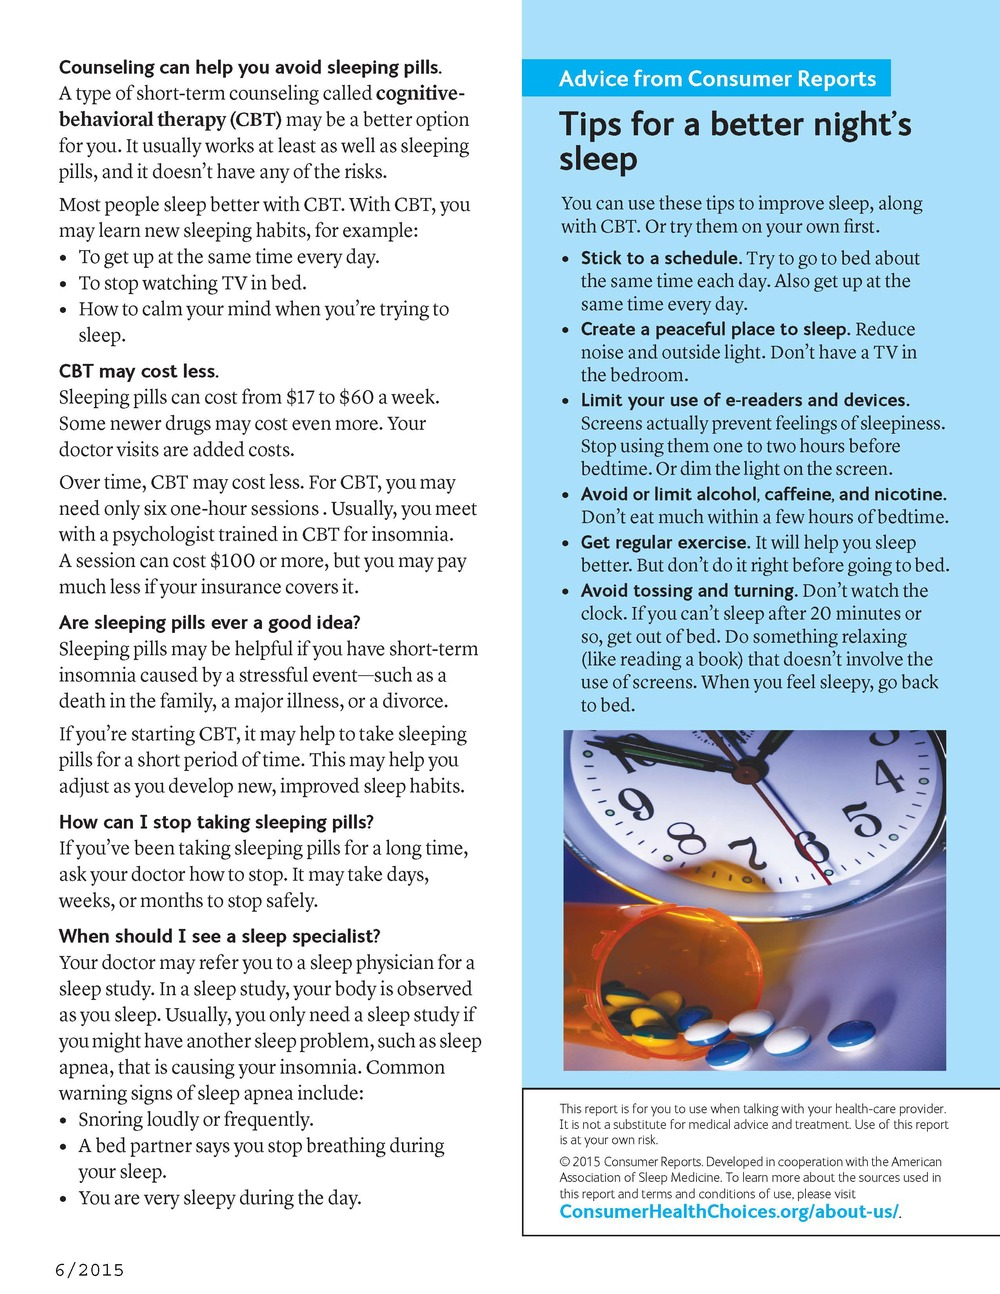 ChoosingWisely-sleepingpills-adults-insomnia_Page_2.jpg